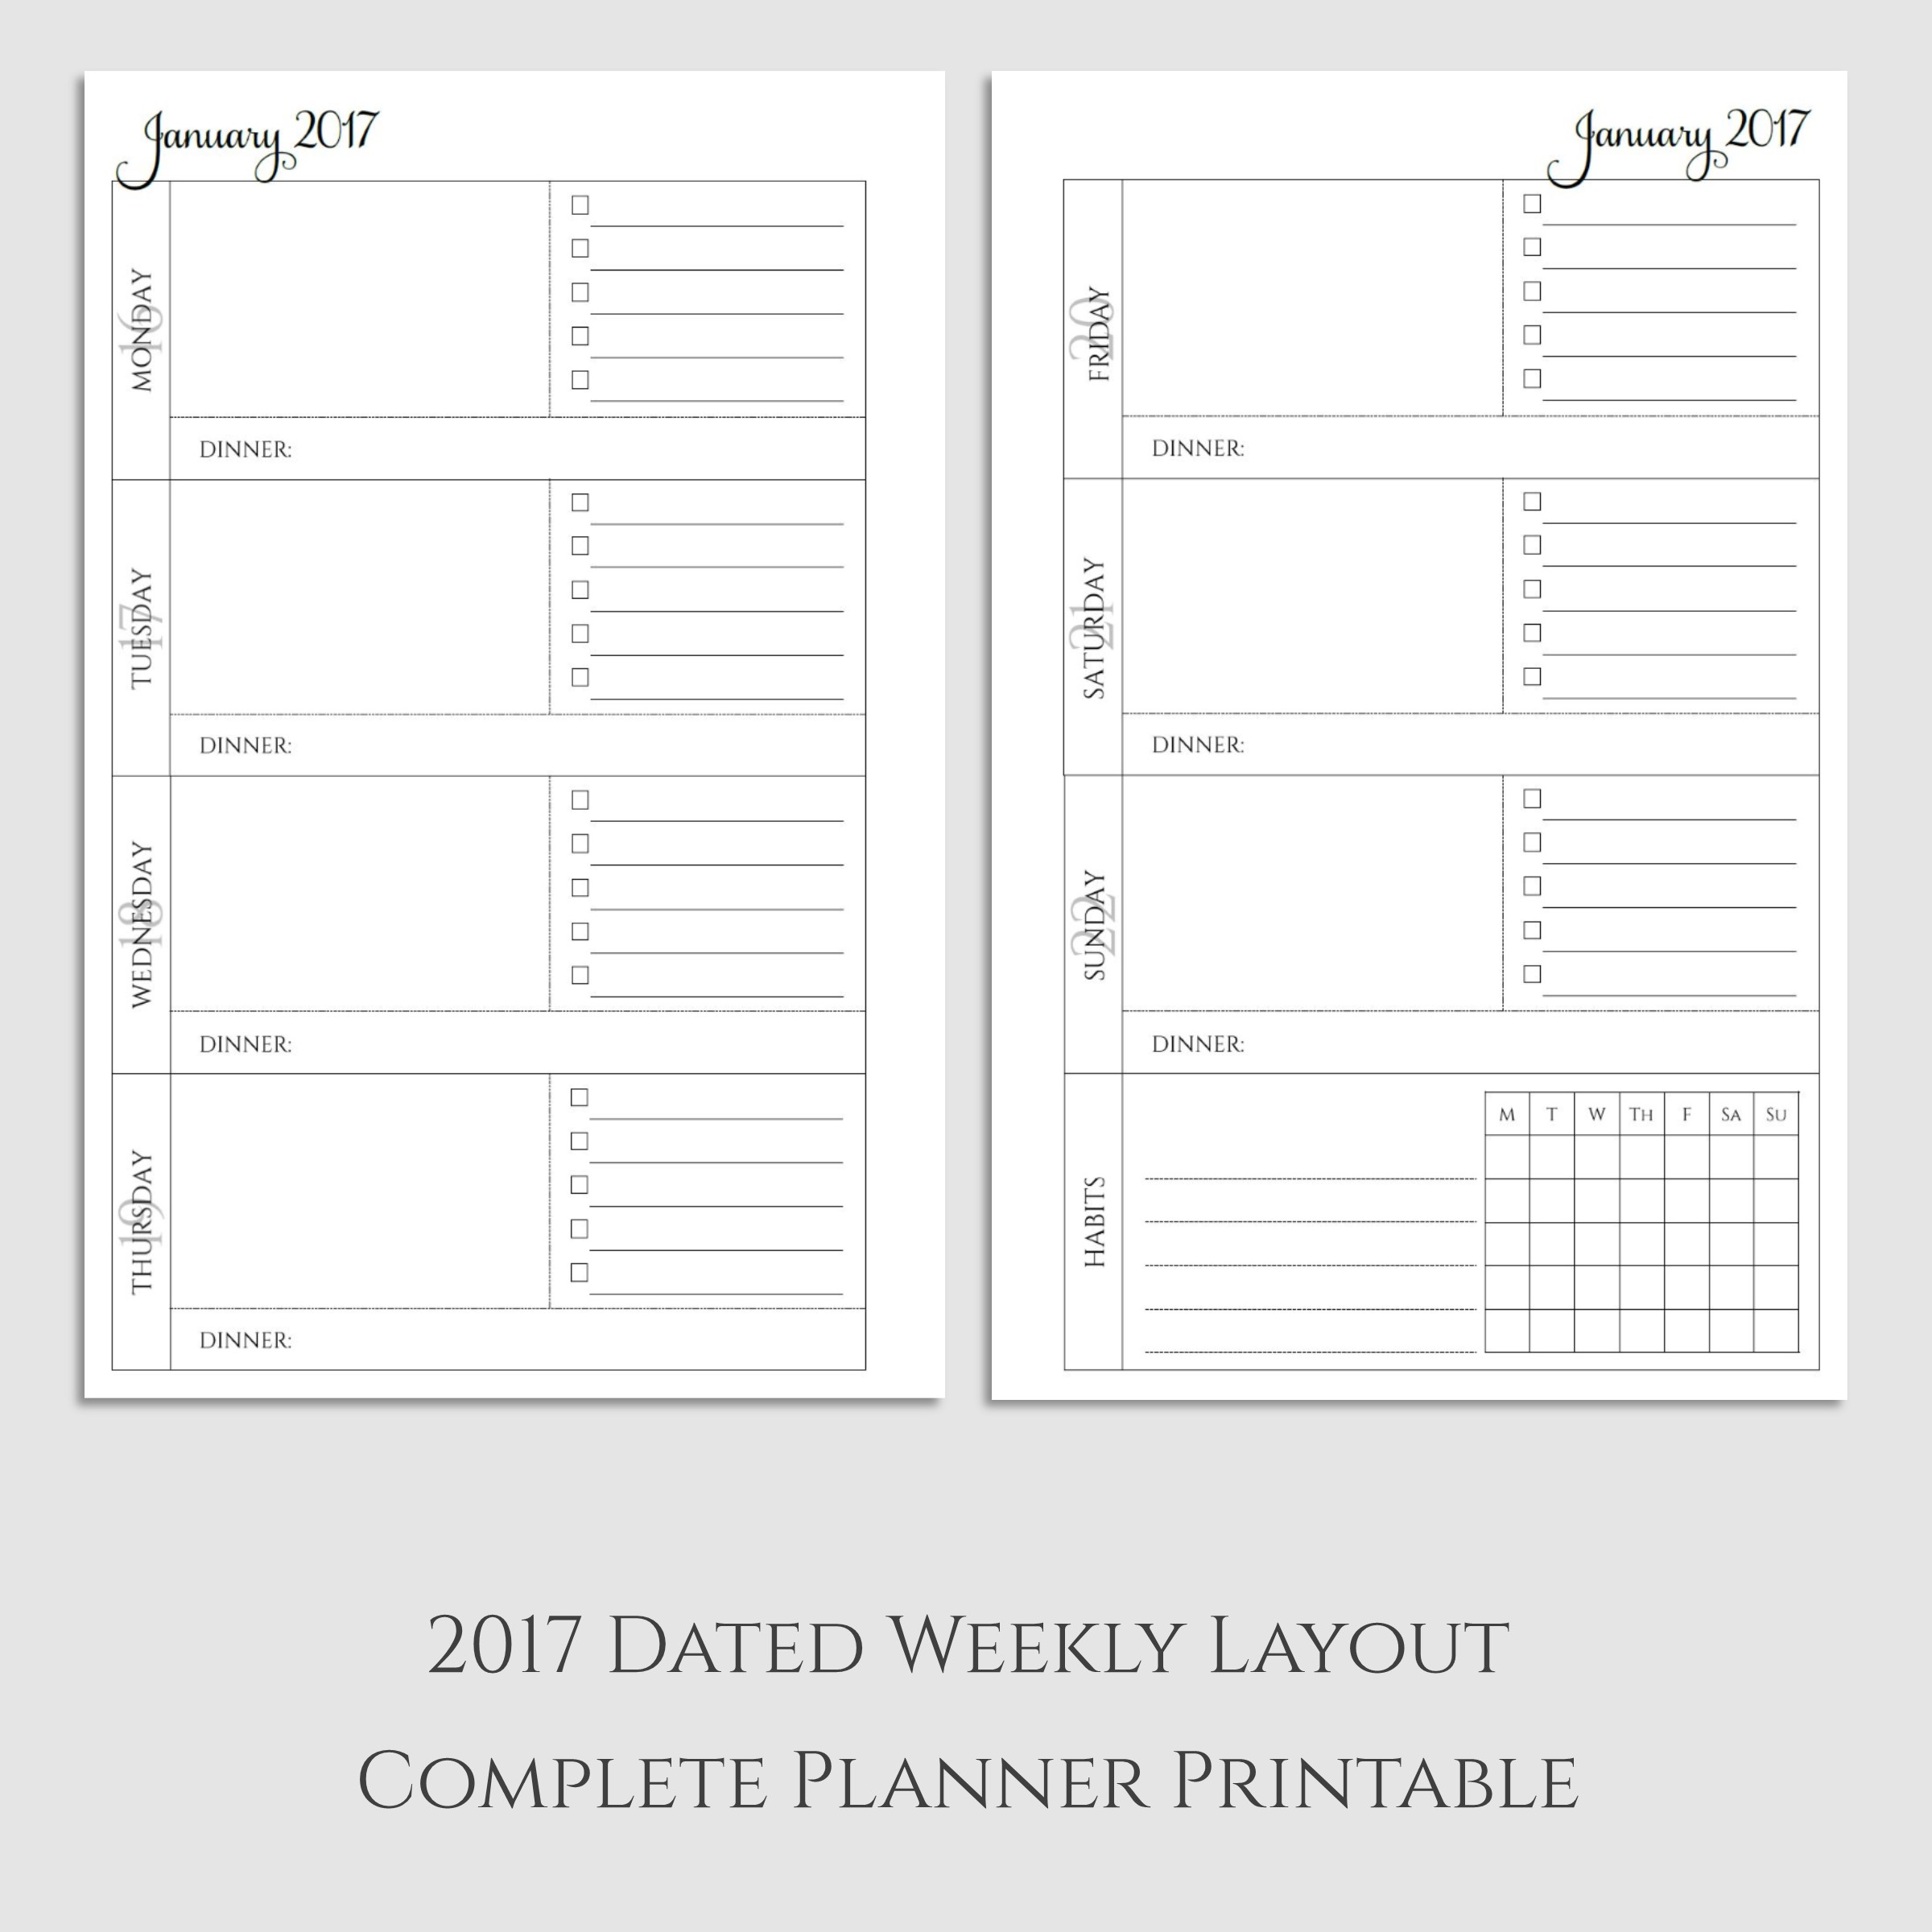 Complete 2017 Weekly Planner Printable with Dinner & Habit Tracker